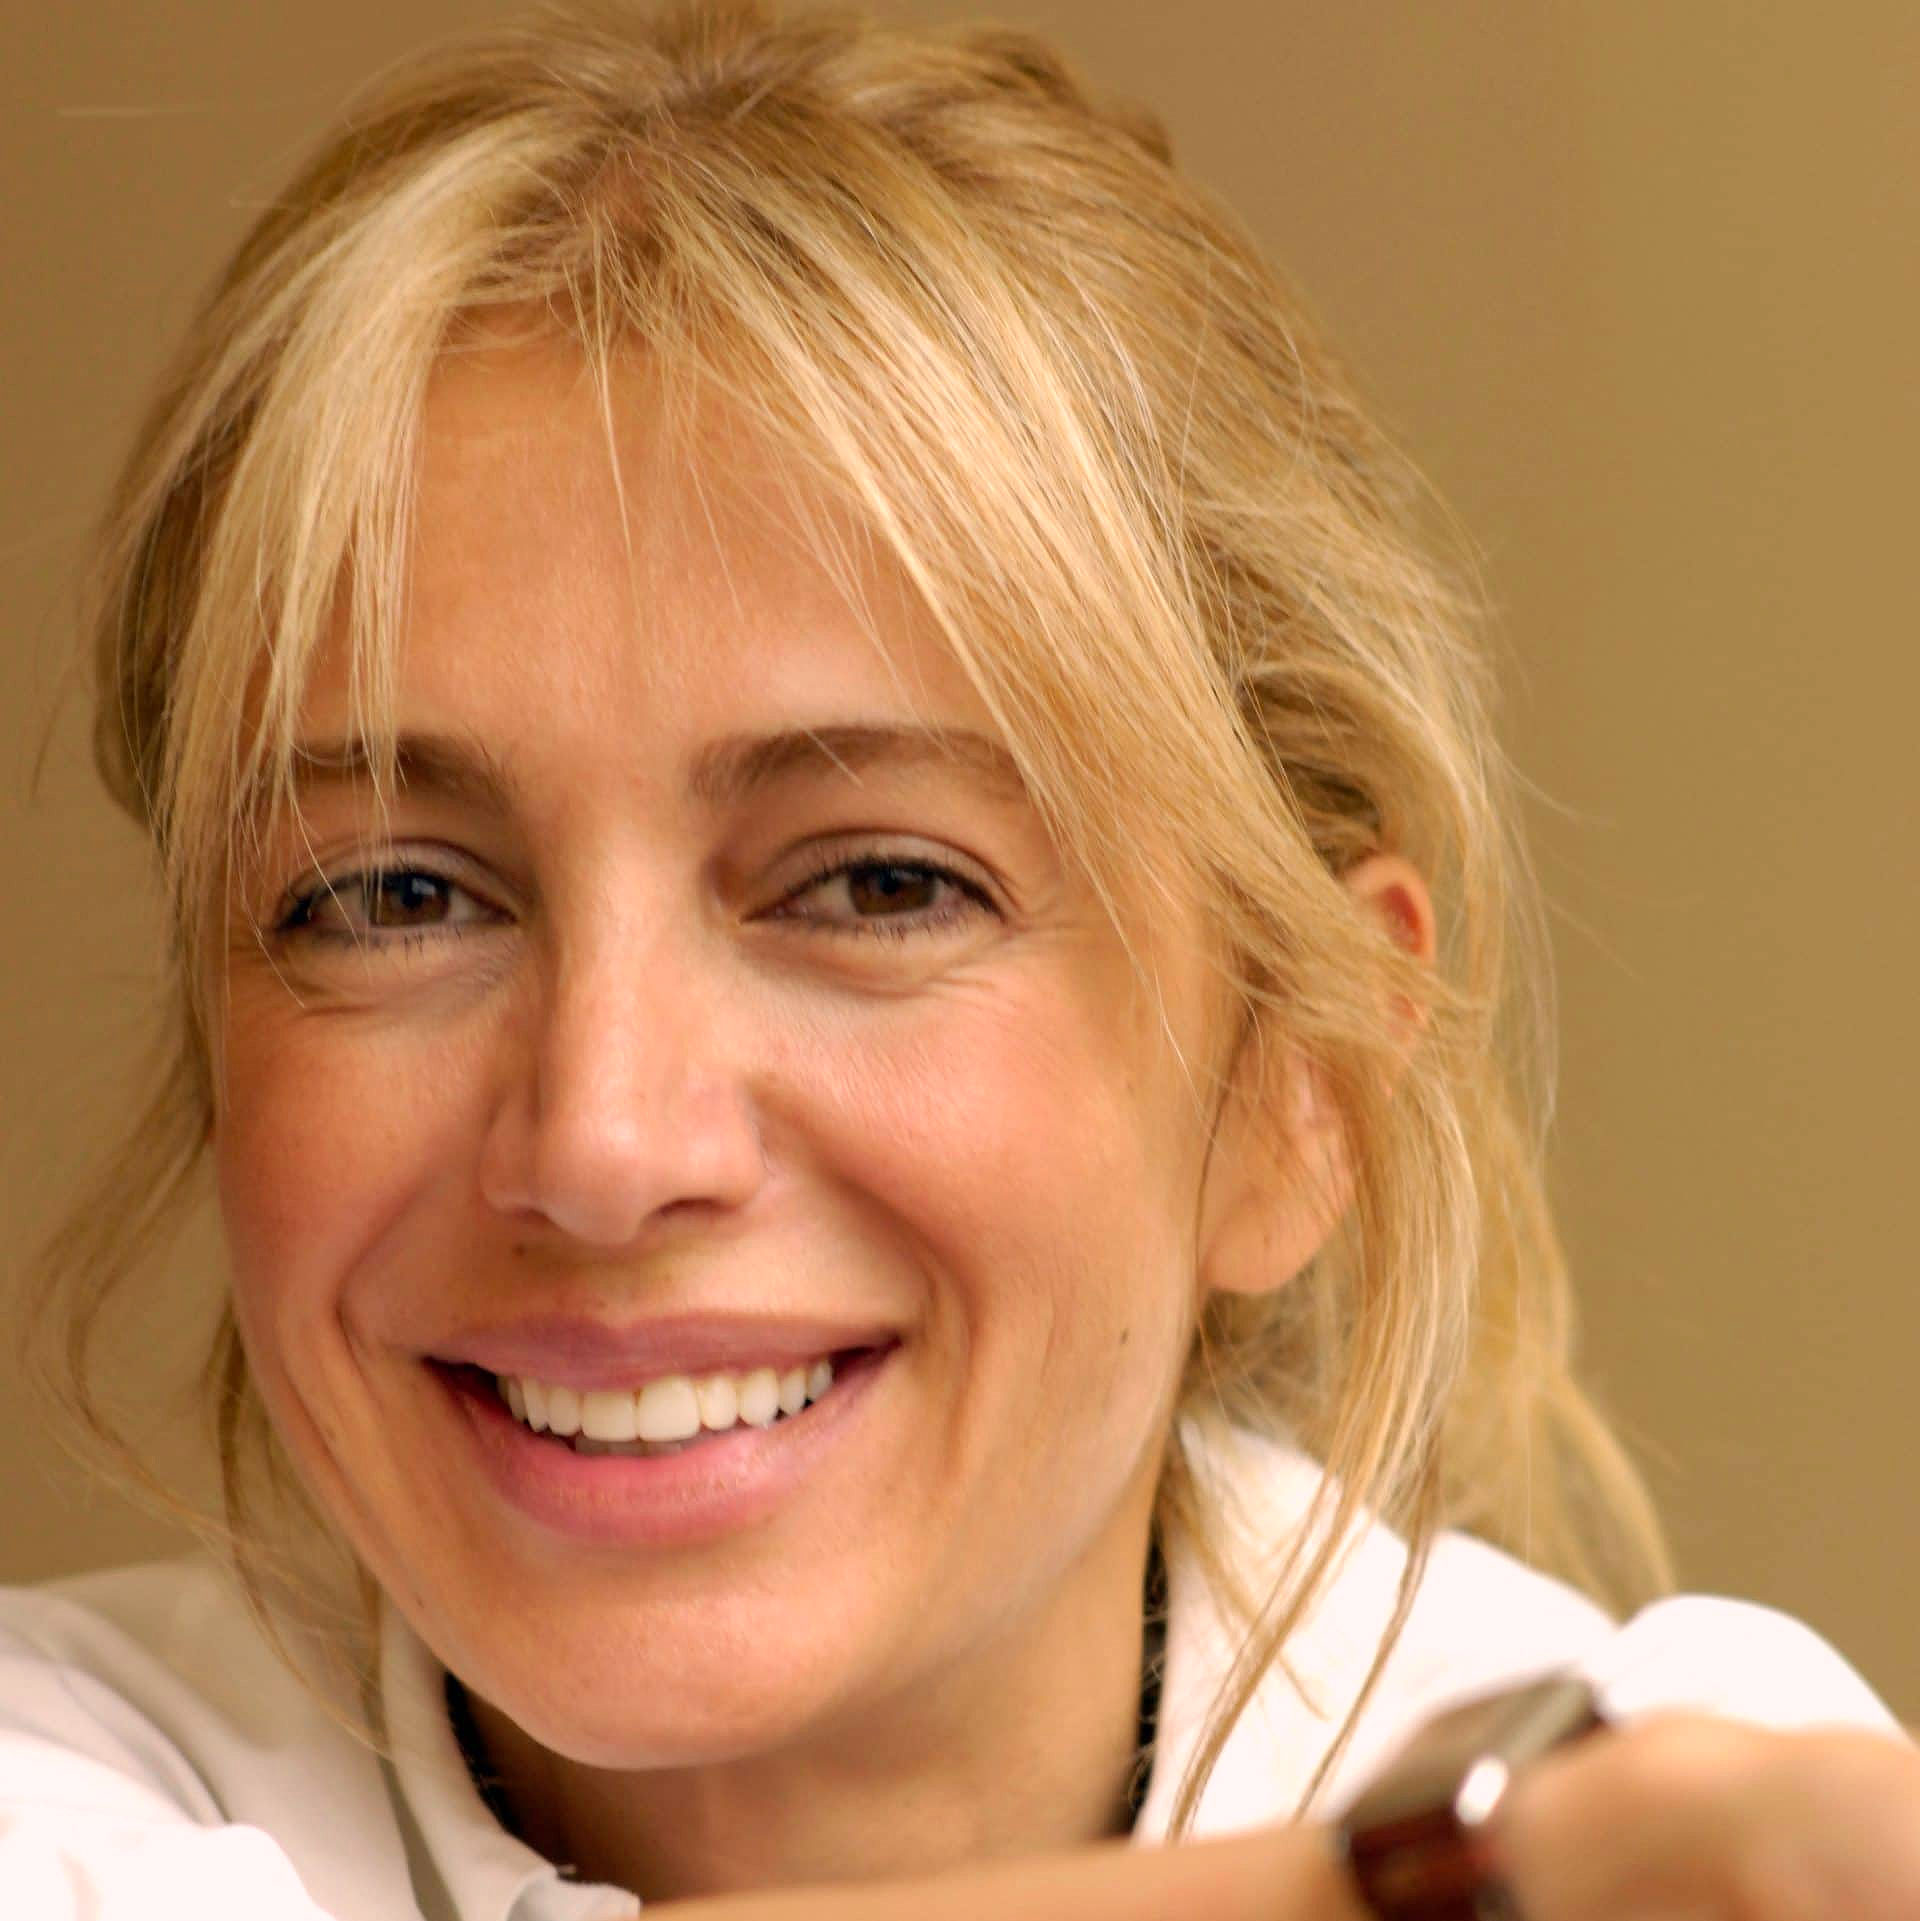 Sahar Hashemi - Motivational Speaker